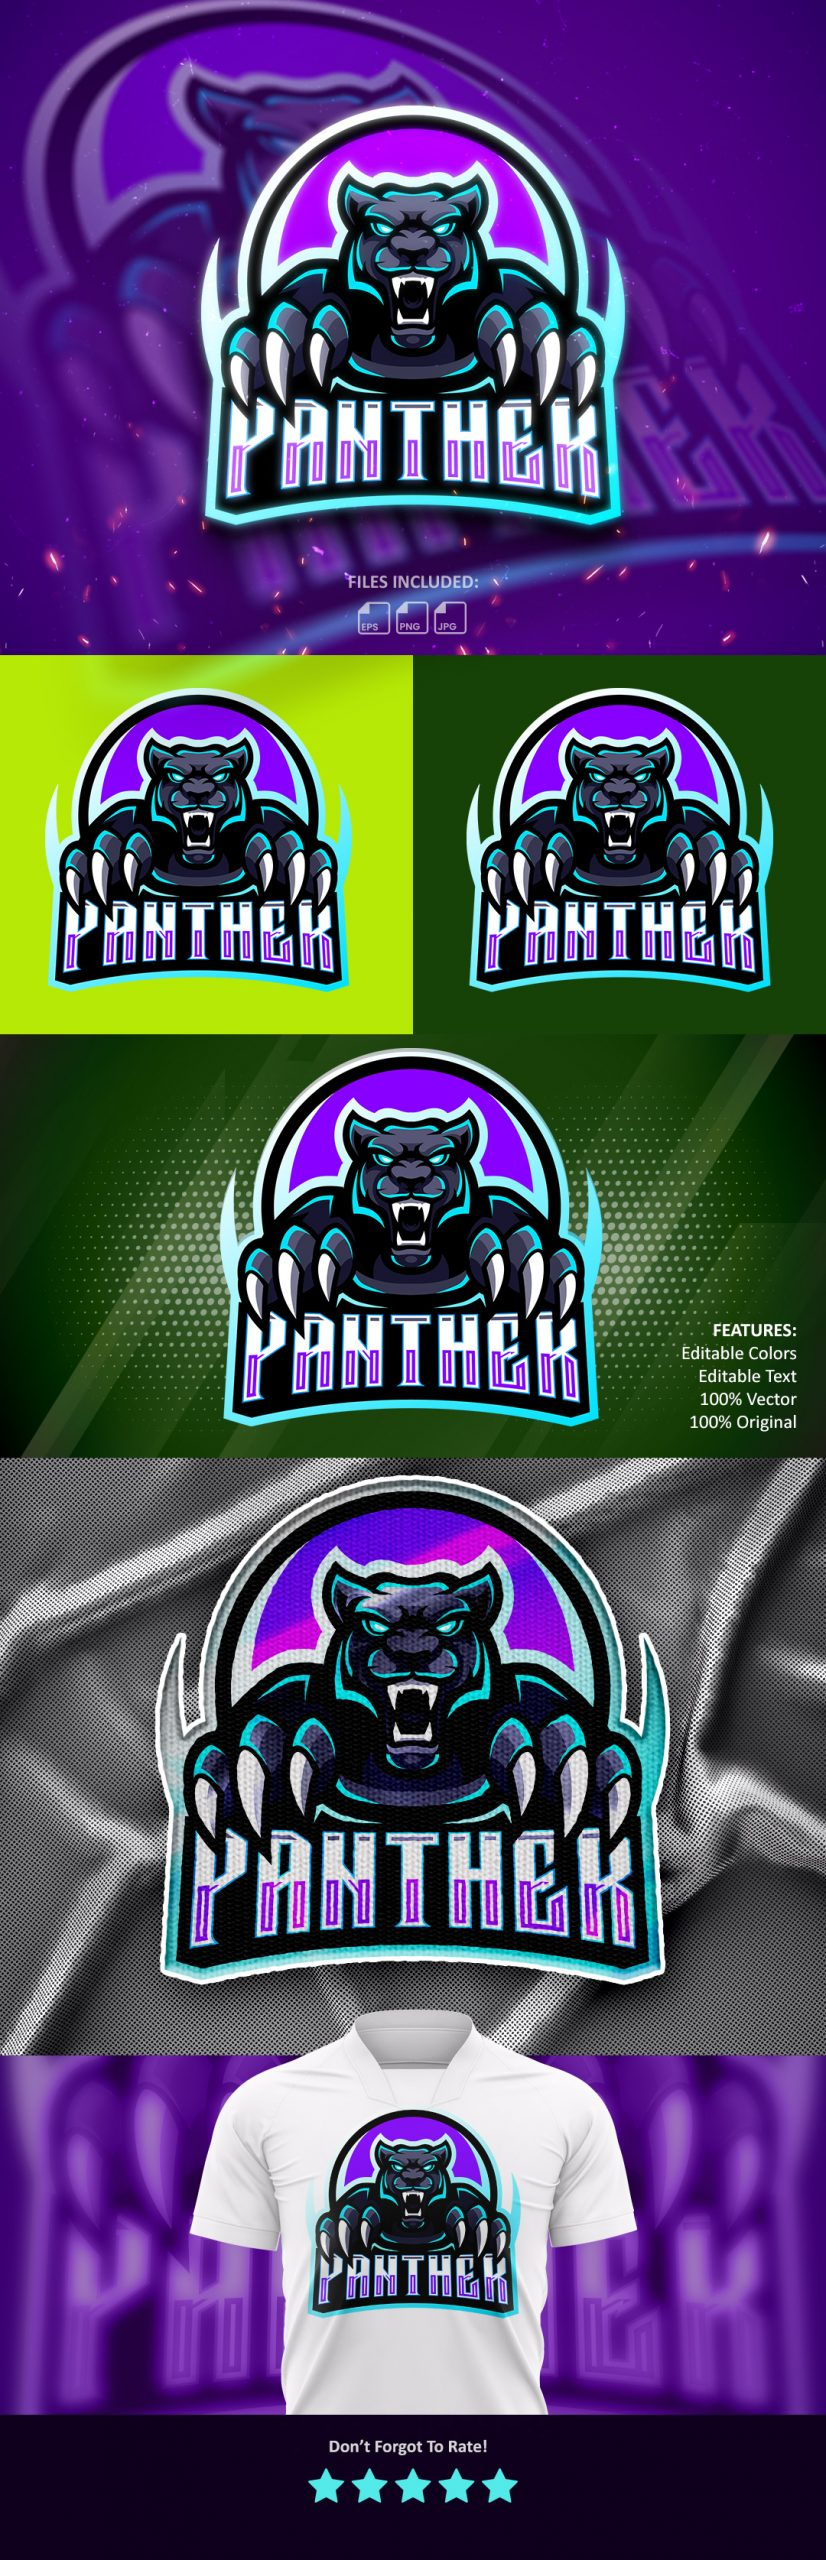 Free-Panther-Esports-Mascot-Logo-Download